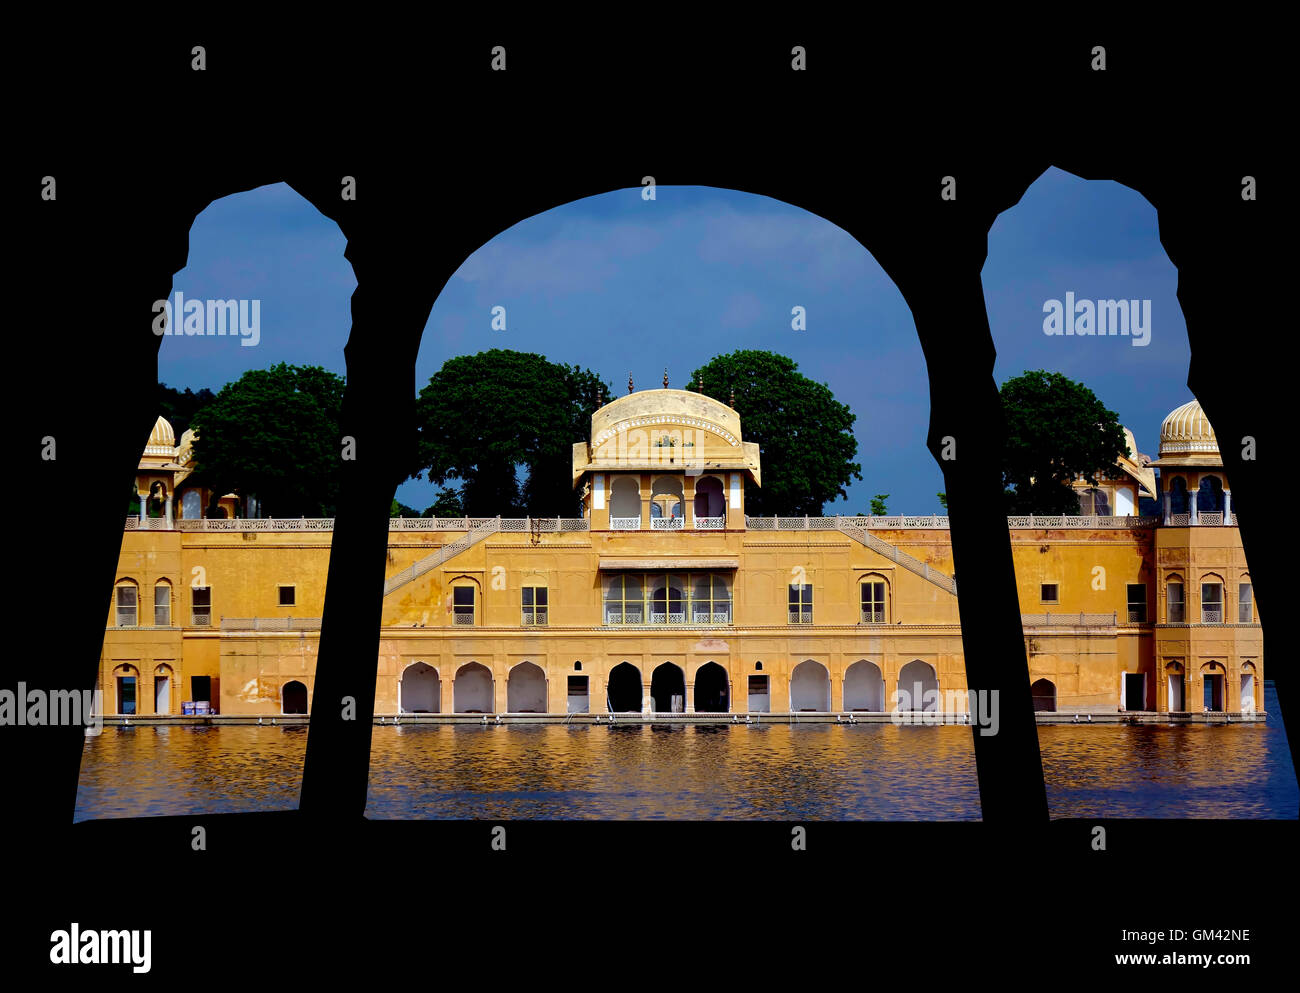 Major Tourist Spots in Jaipur, Rajasthan, India - Stock Image